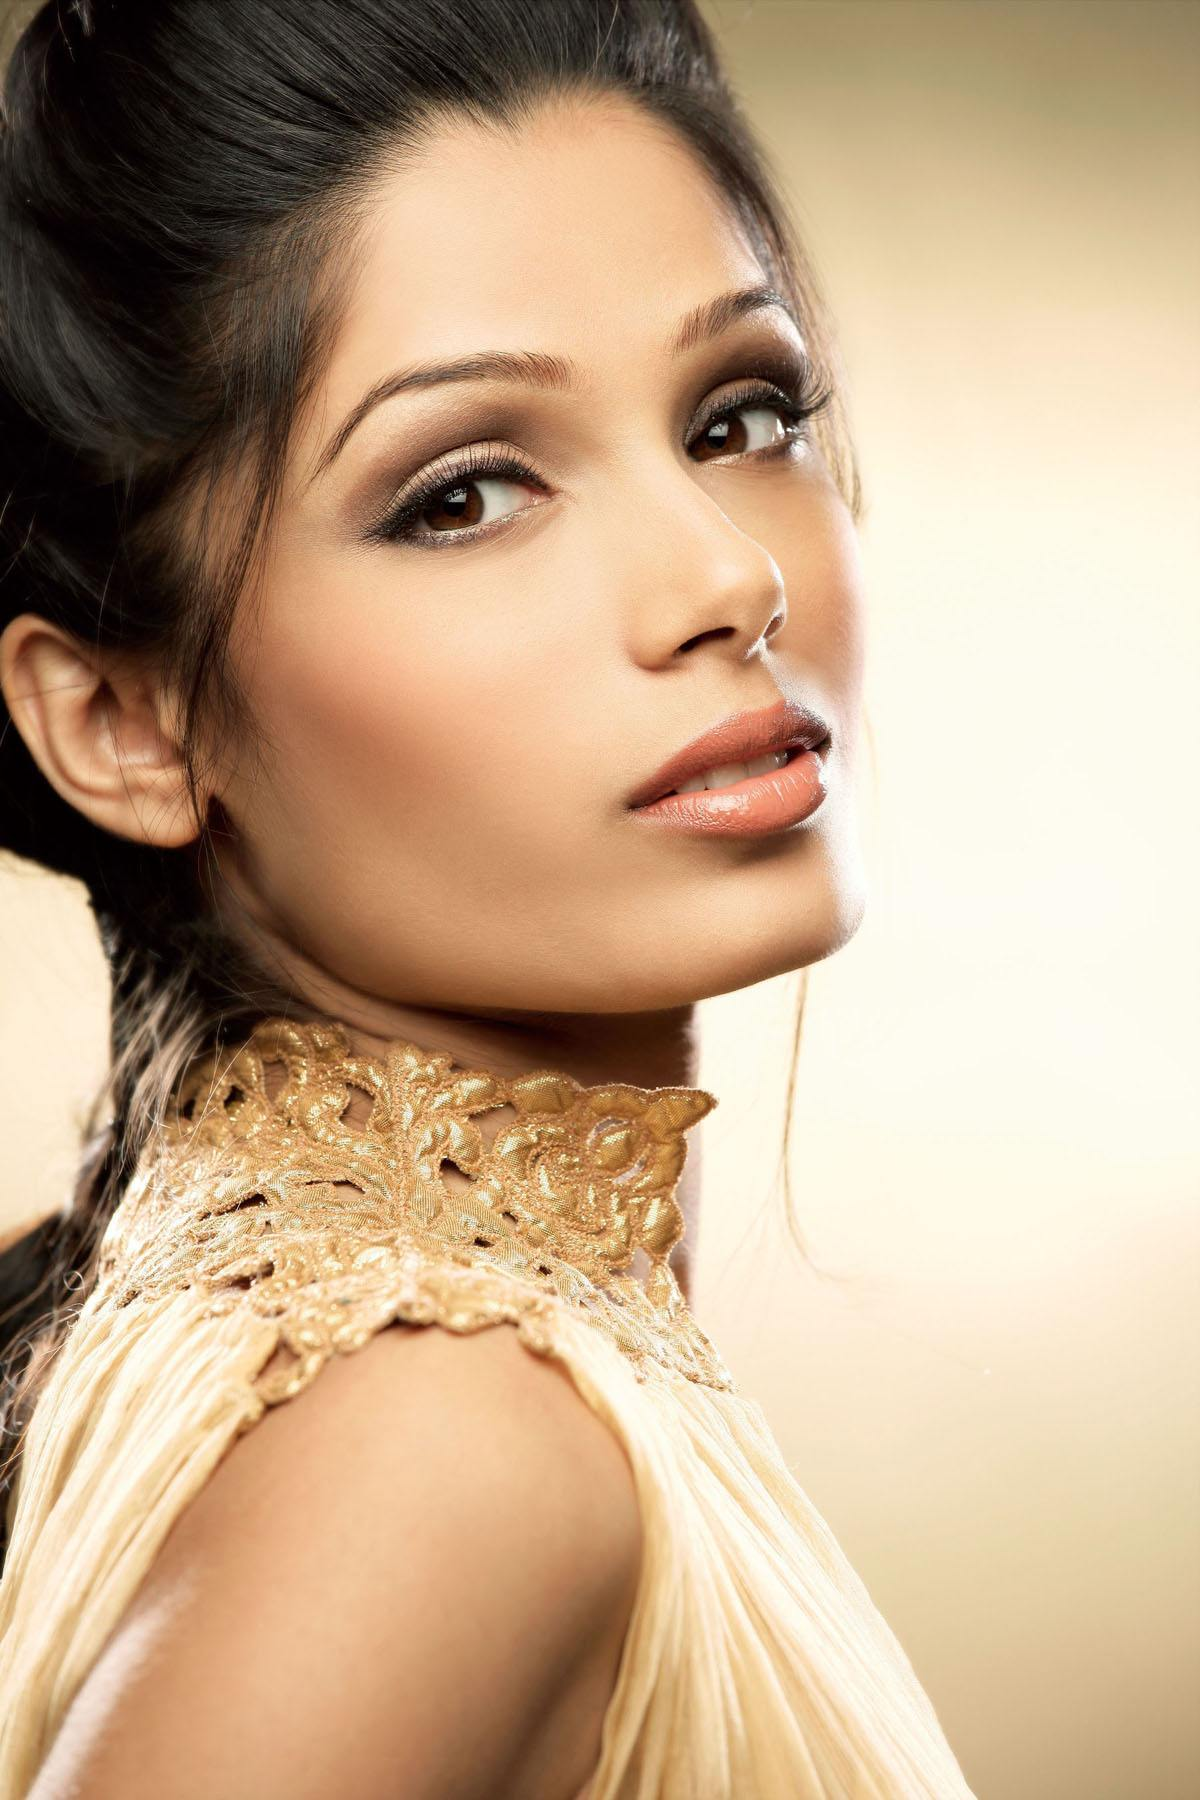 Freida pinto face wallpapers